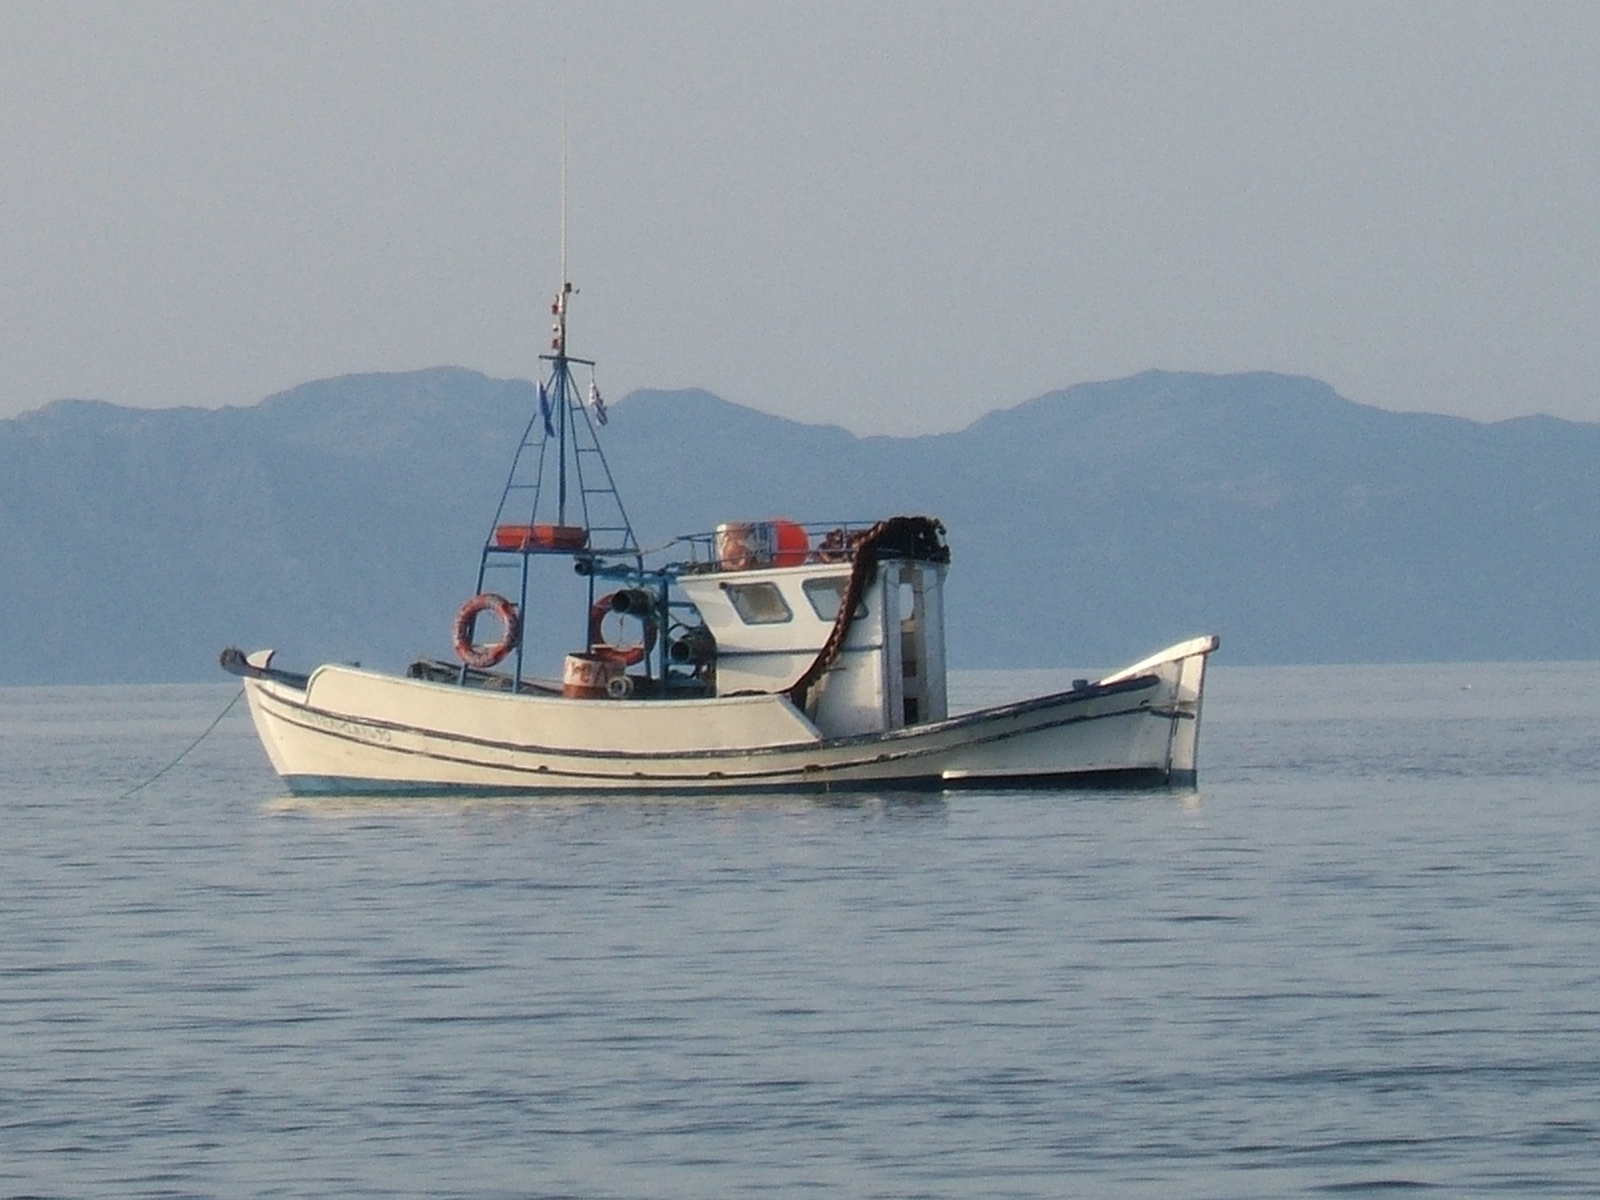 Fishing boat with Turkey in the distance, beautiful evening at Avra beach. Rhodes, Greece © 2008 Tina M Welter